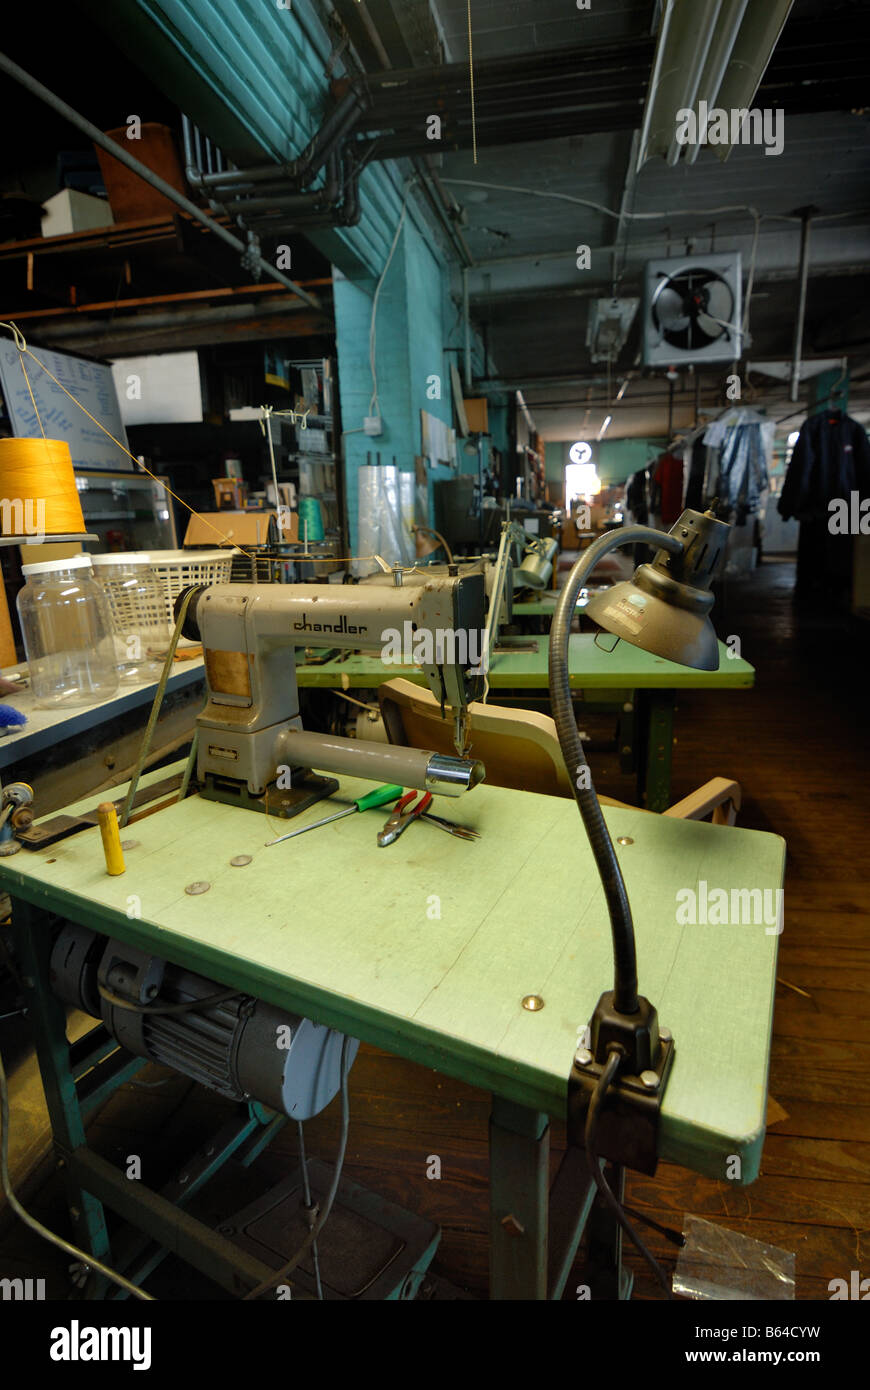 One of many old sewing machines and workspaces for seamstresses or tailors in a dry cleaning and alternations shop - Stock Image